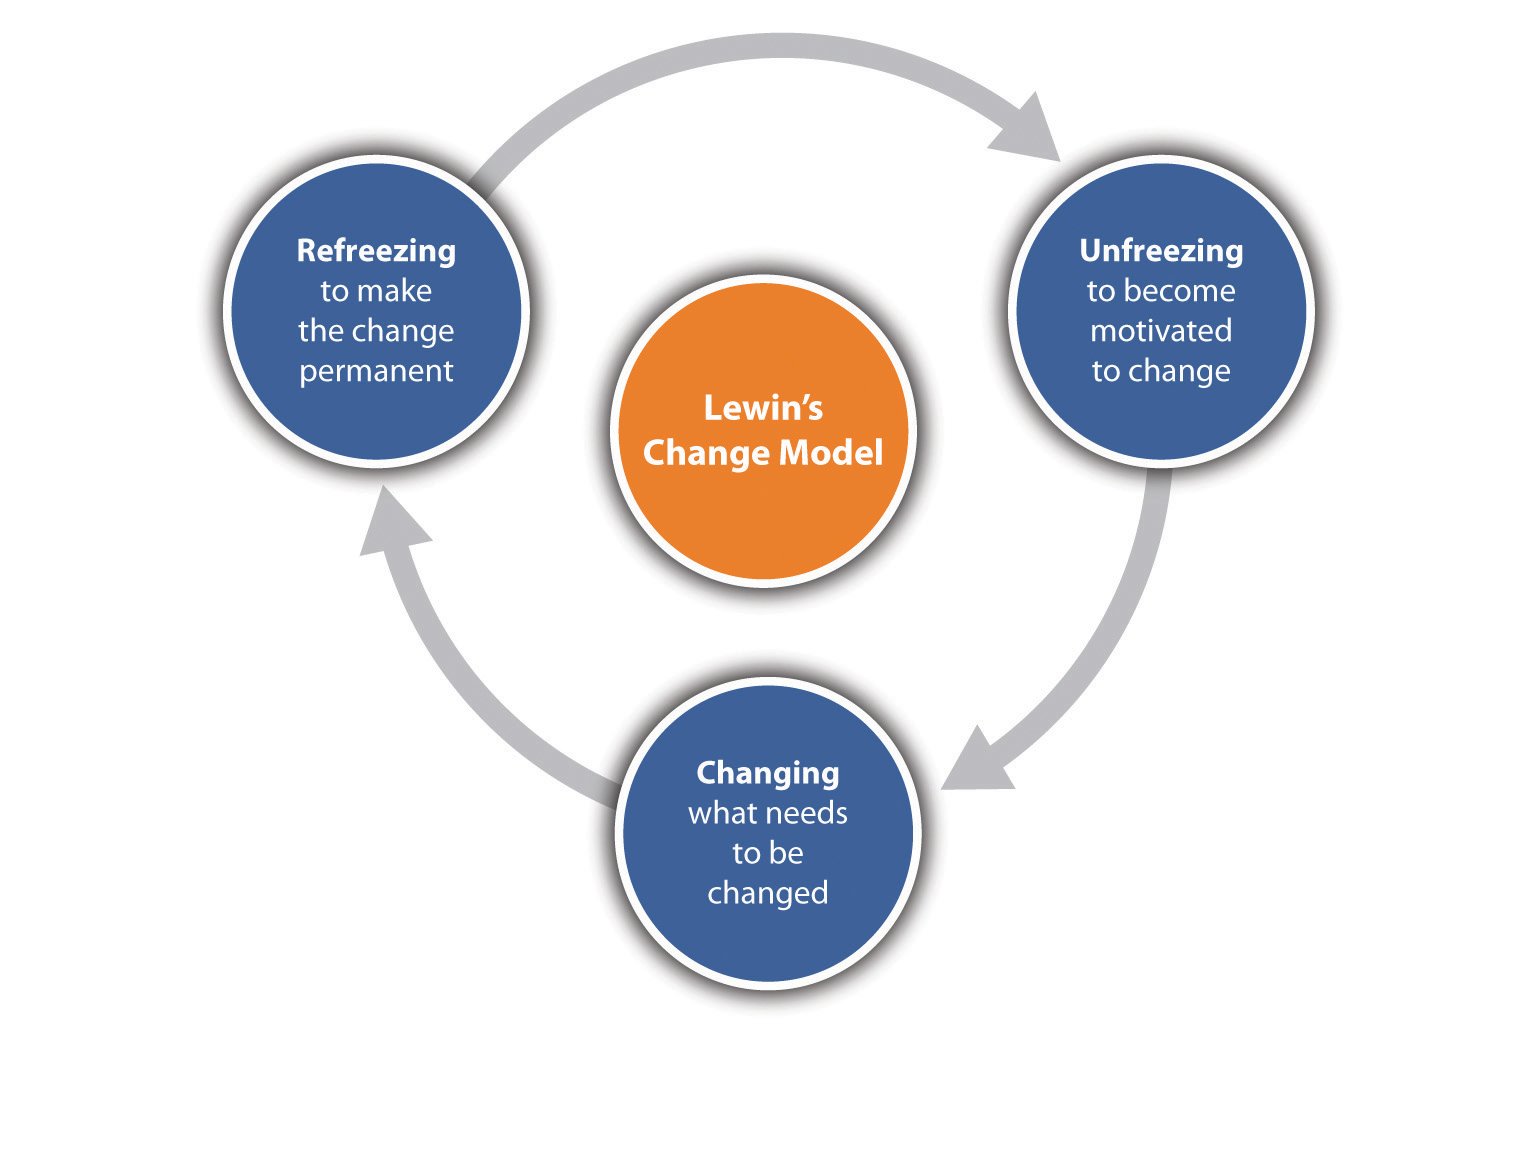 analysis of kurt lewins theory Planned change [1] , kurt lewin proposed a three stage theory of change commonly referred to as unfreeze, change (or transition), freeze (or refreeze.